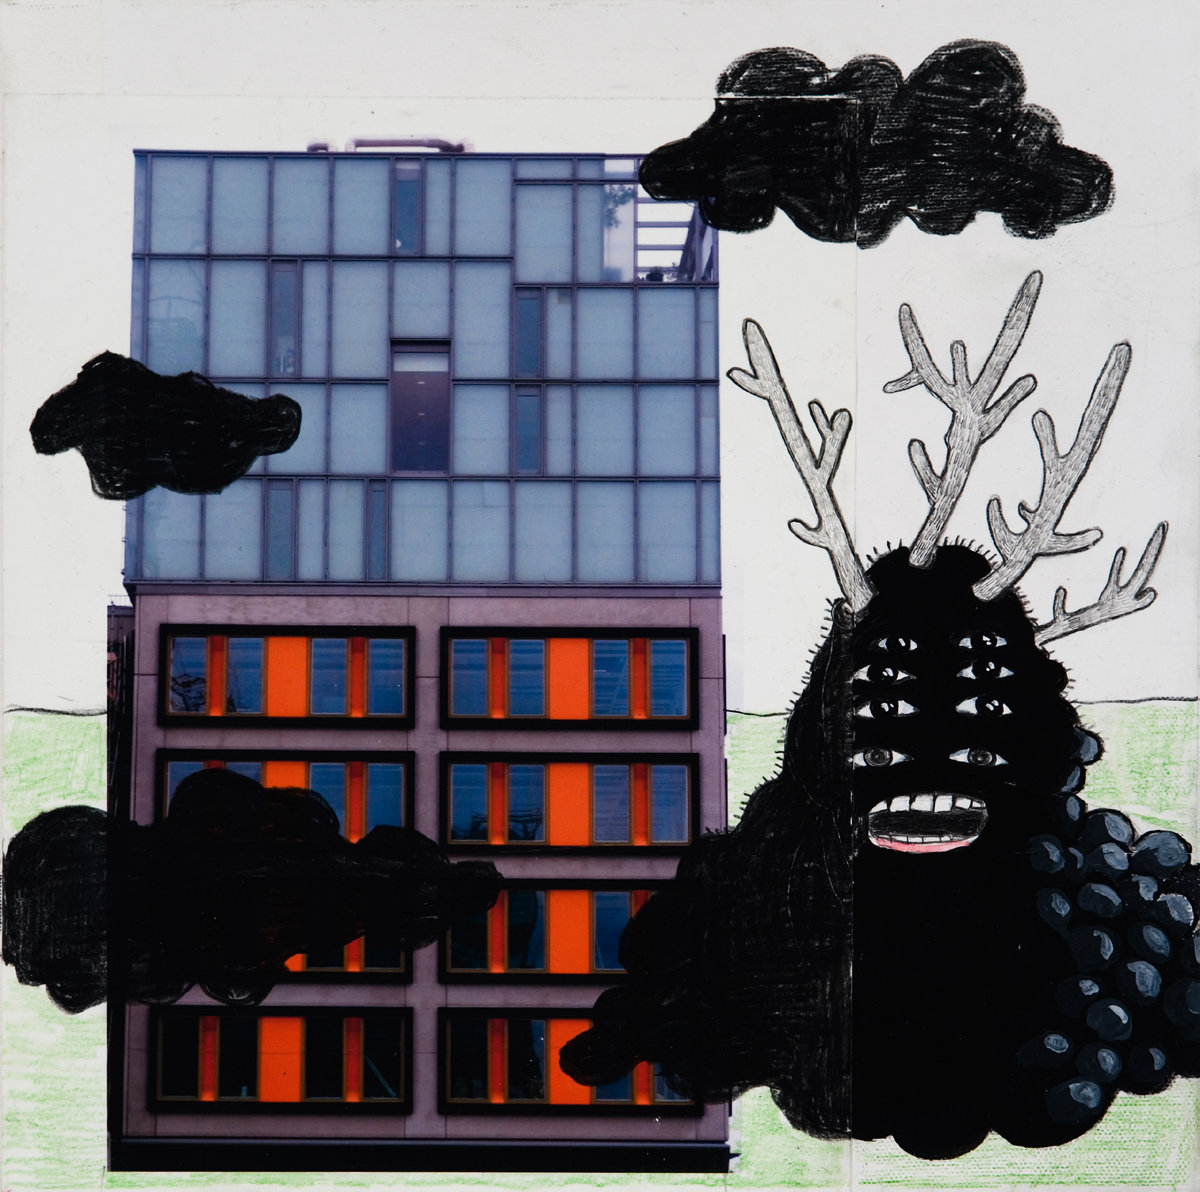 Matt Ernst   Dark Clouds,  2006  Mixed media on canvas  12 x 12 inches